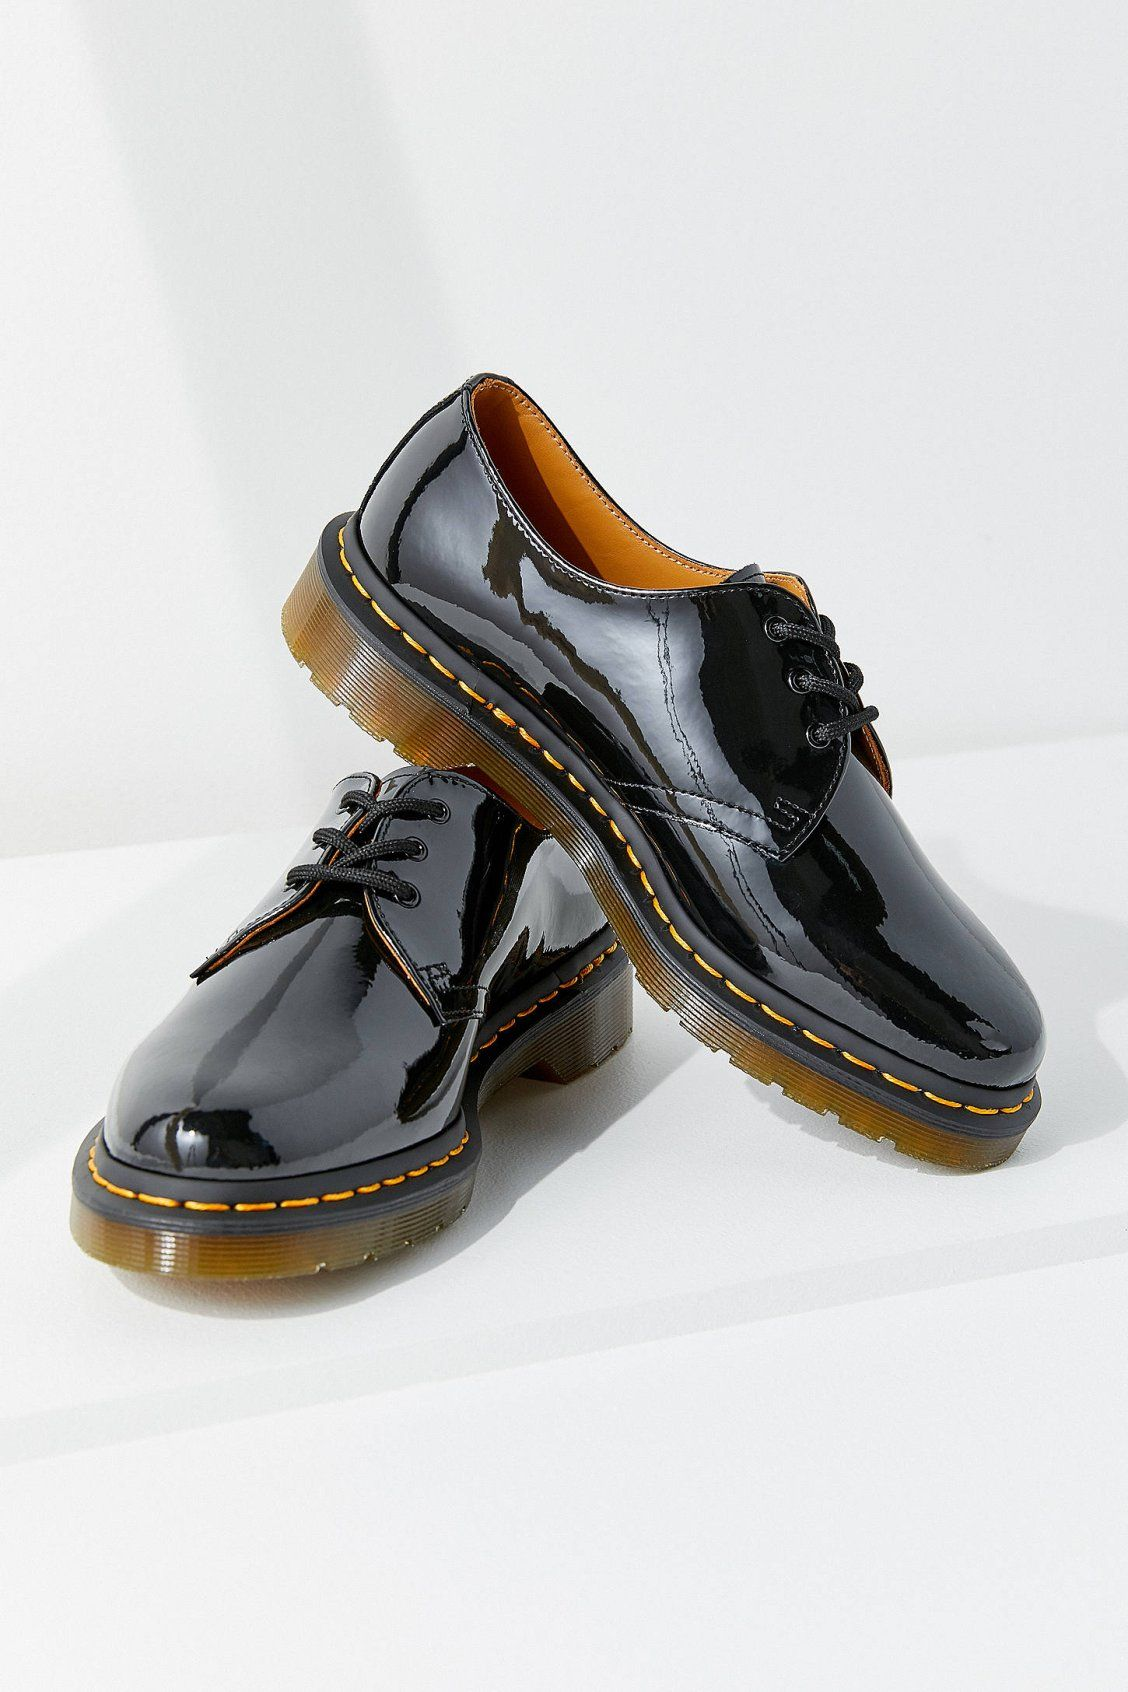 Dr Martens 1461 Patent 3 Eye Oxford Urban Outfitters Oxford Shoes Shoes Urban Dresses